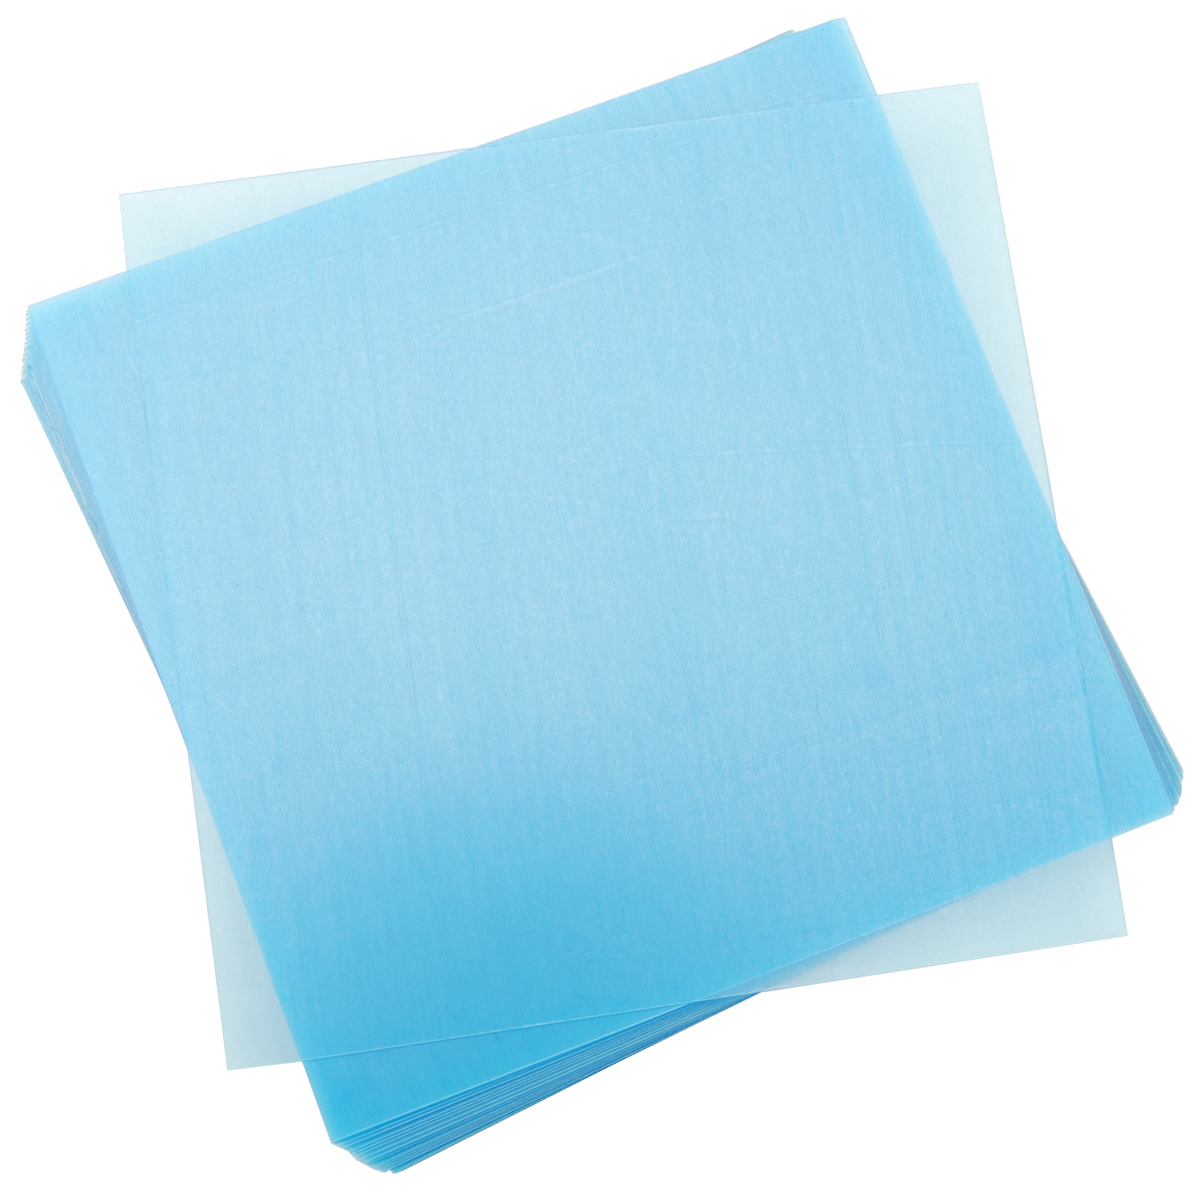 Clear Plastic Sheets.Plastic Awning Panels Plastic Ceiling ...